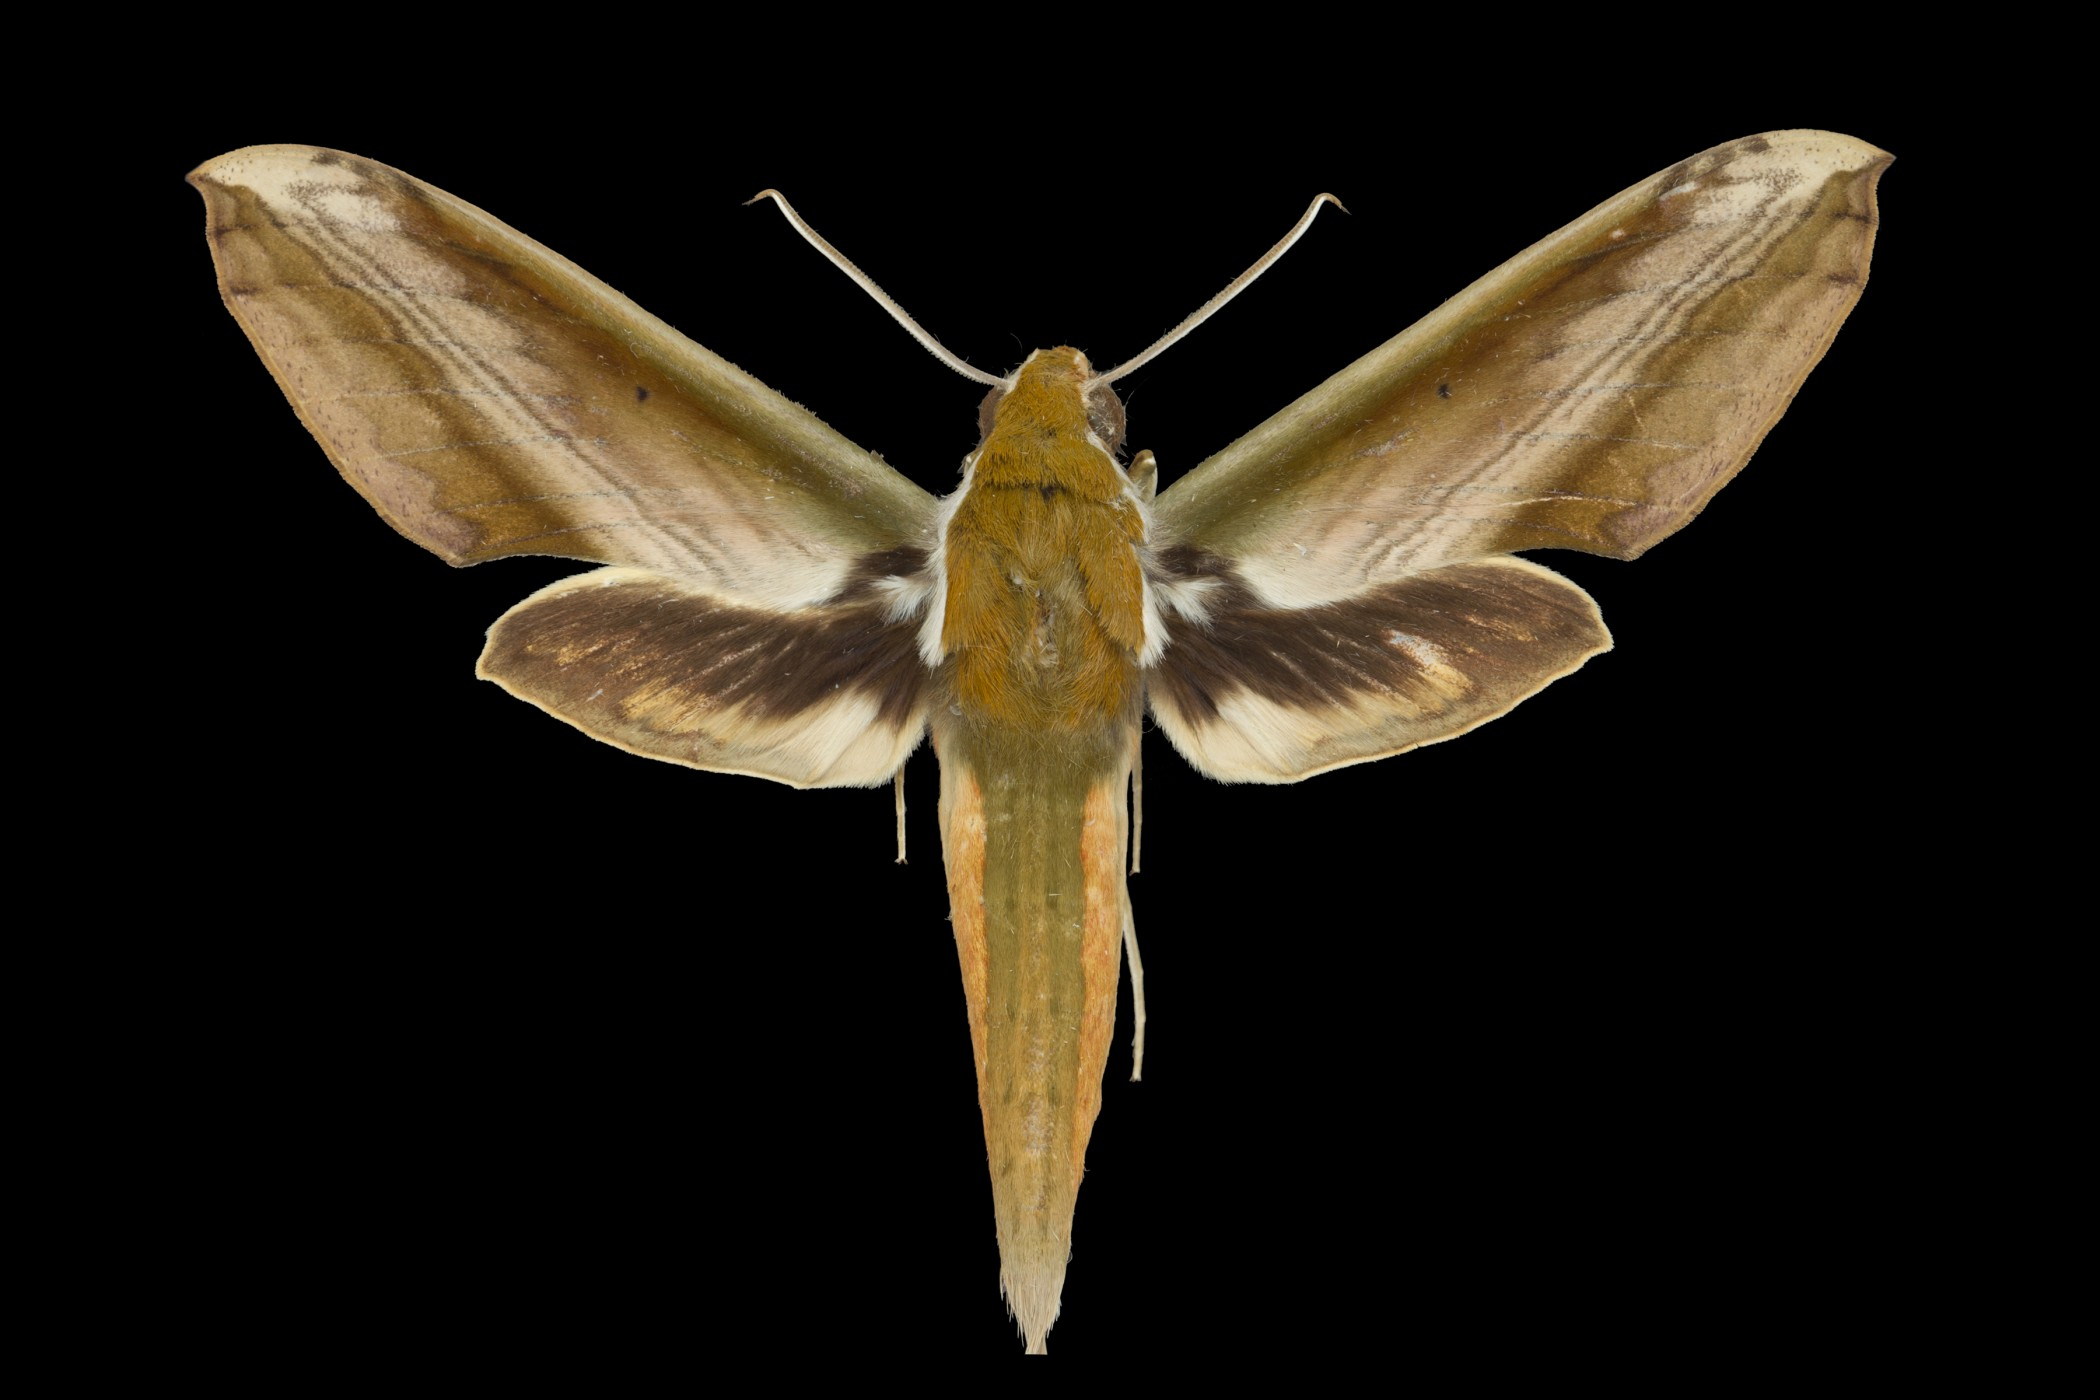 Study shows hawkmoths use ultrasound to combat bats